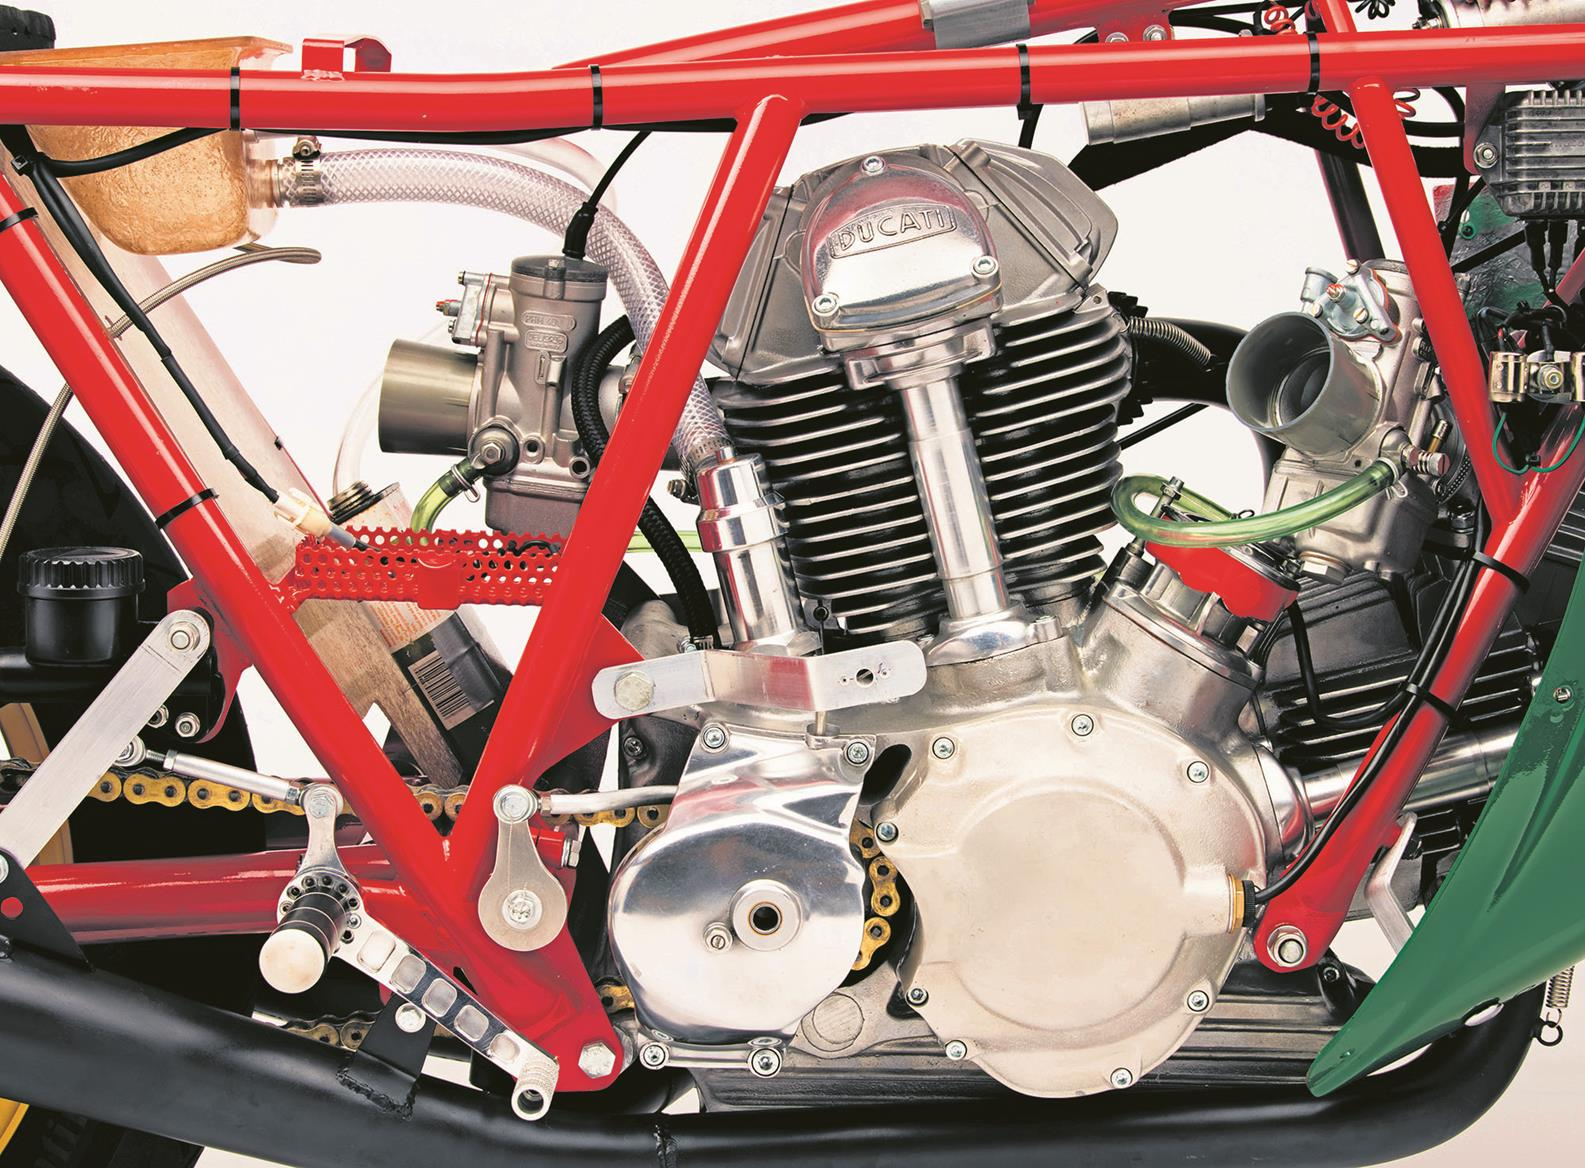 The bike's internals have been updated and strengthened